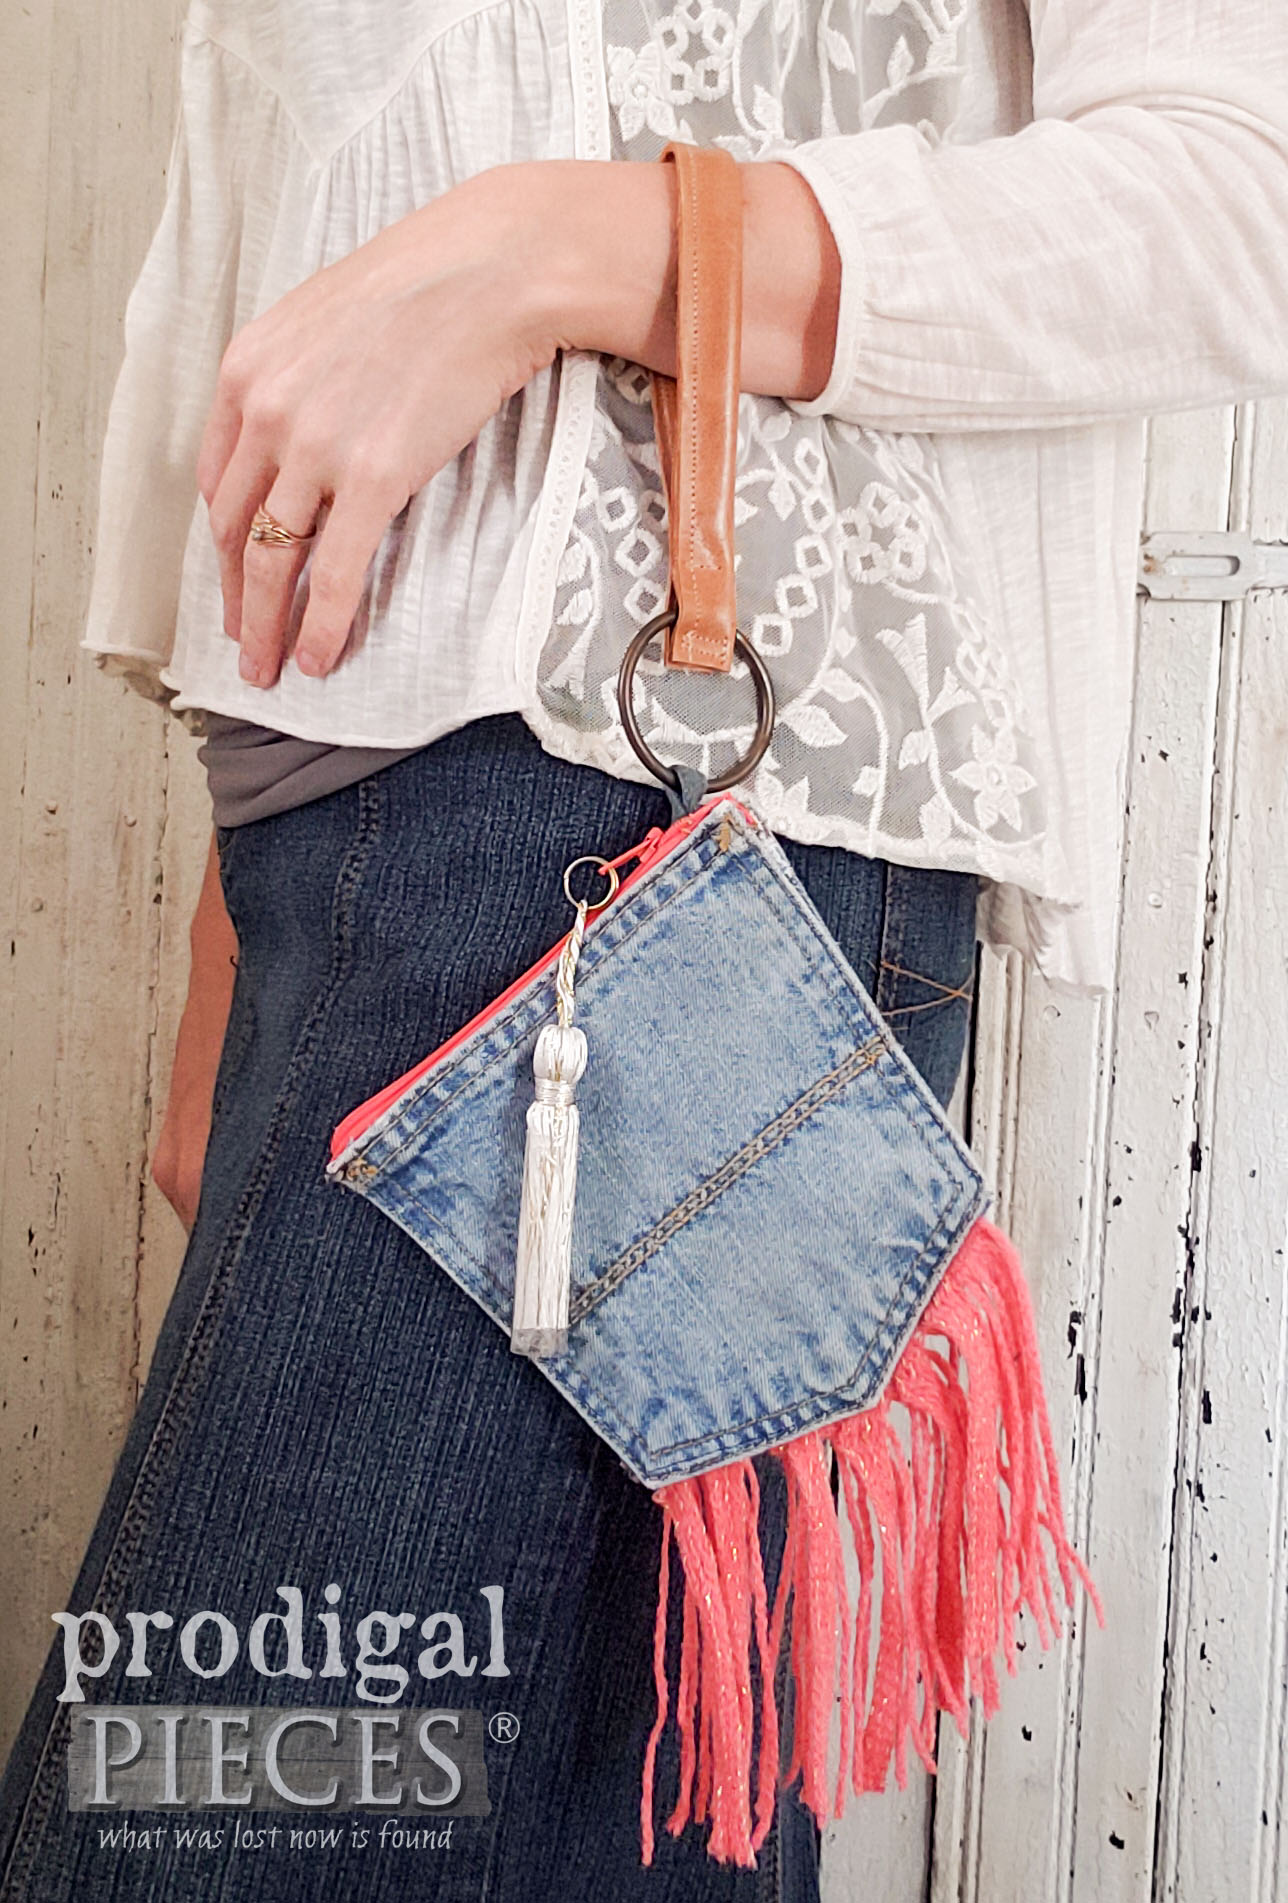 Handmade Denim Pocket Purse Wristlet with Coral Accents by Larissa of Prodigal Pieces | prodigalpieces.com #prodigalpieces #handmade #fashion #style #diy #purse #bag #women